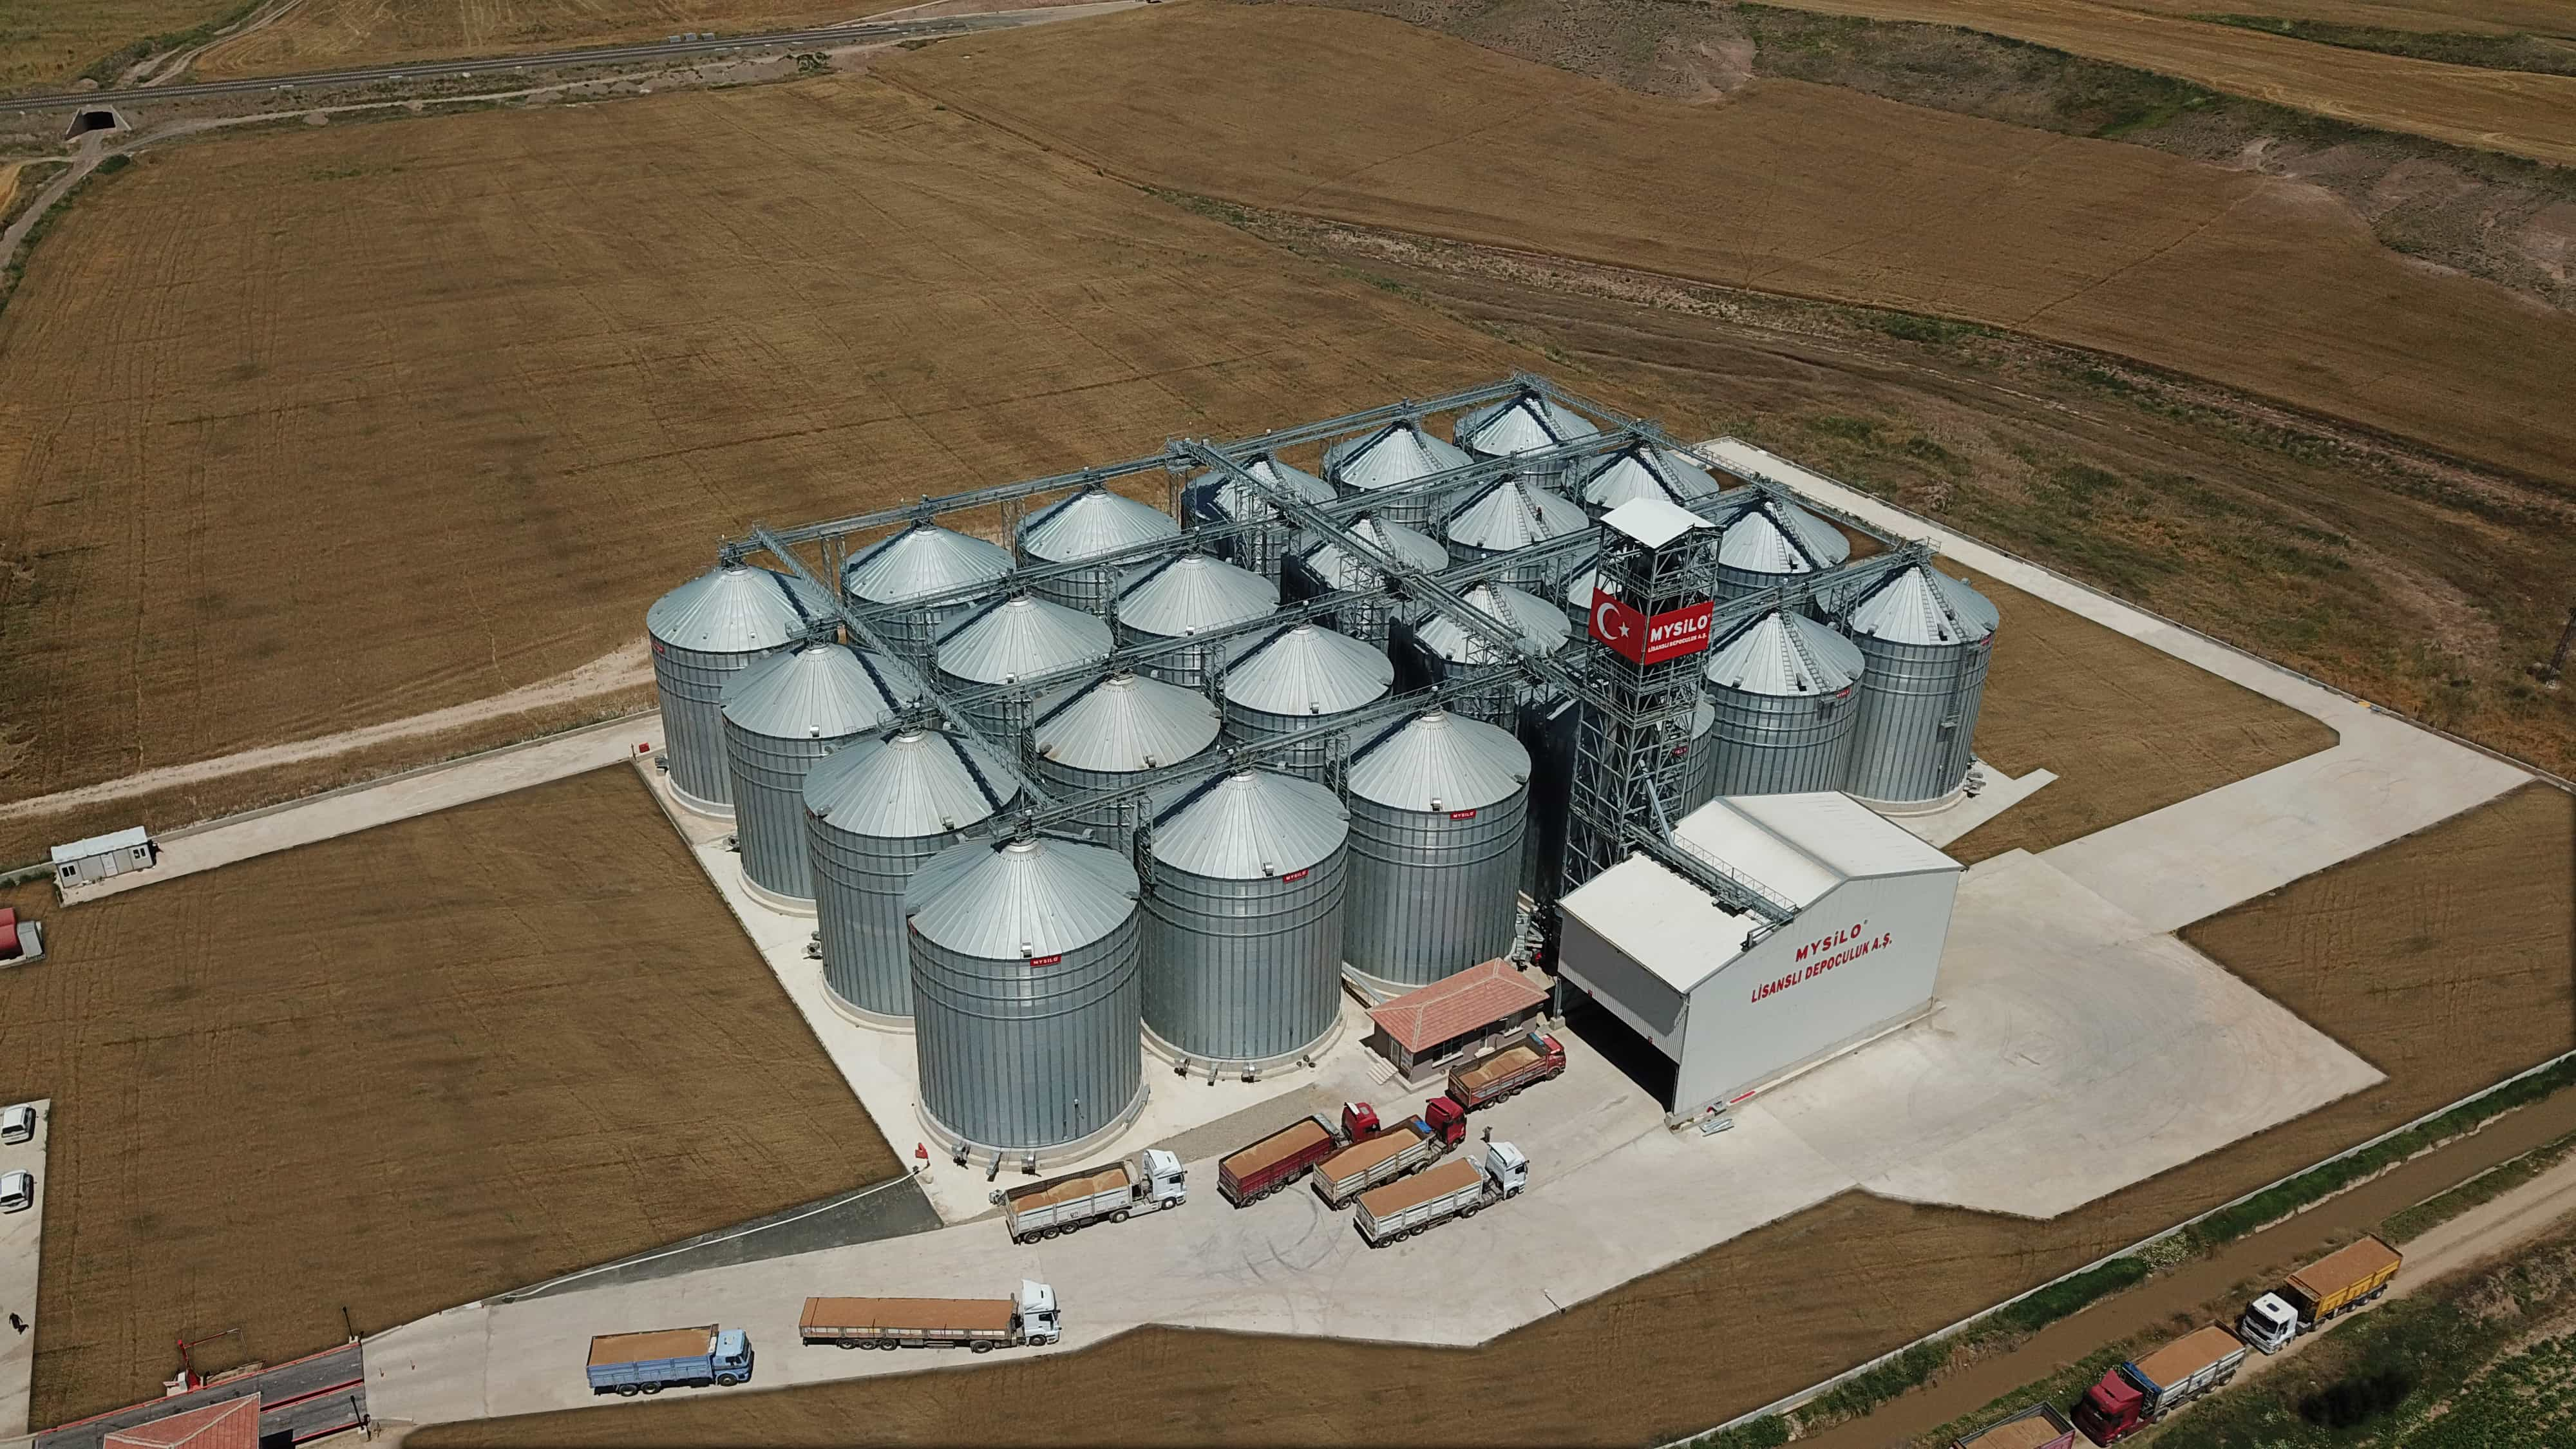 30 MILLION TONS OF GRAIN IS STORED IN MYSILO...